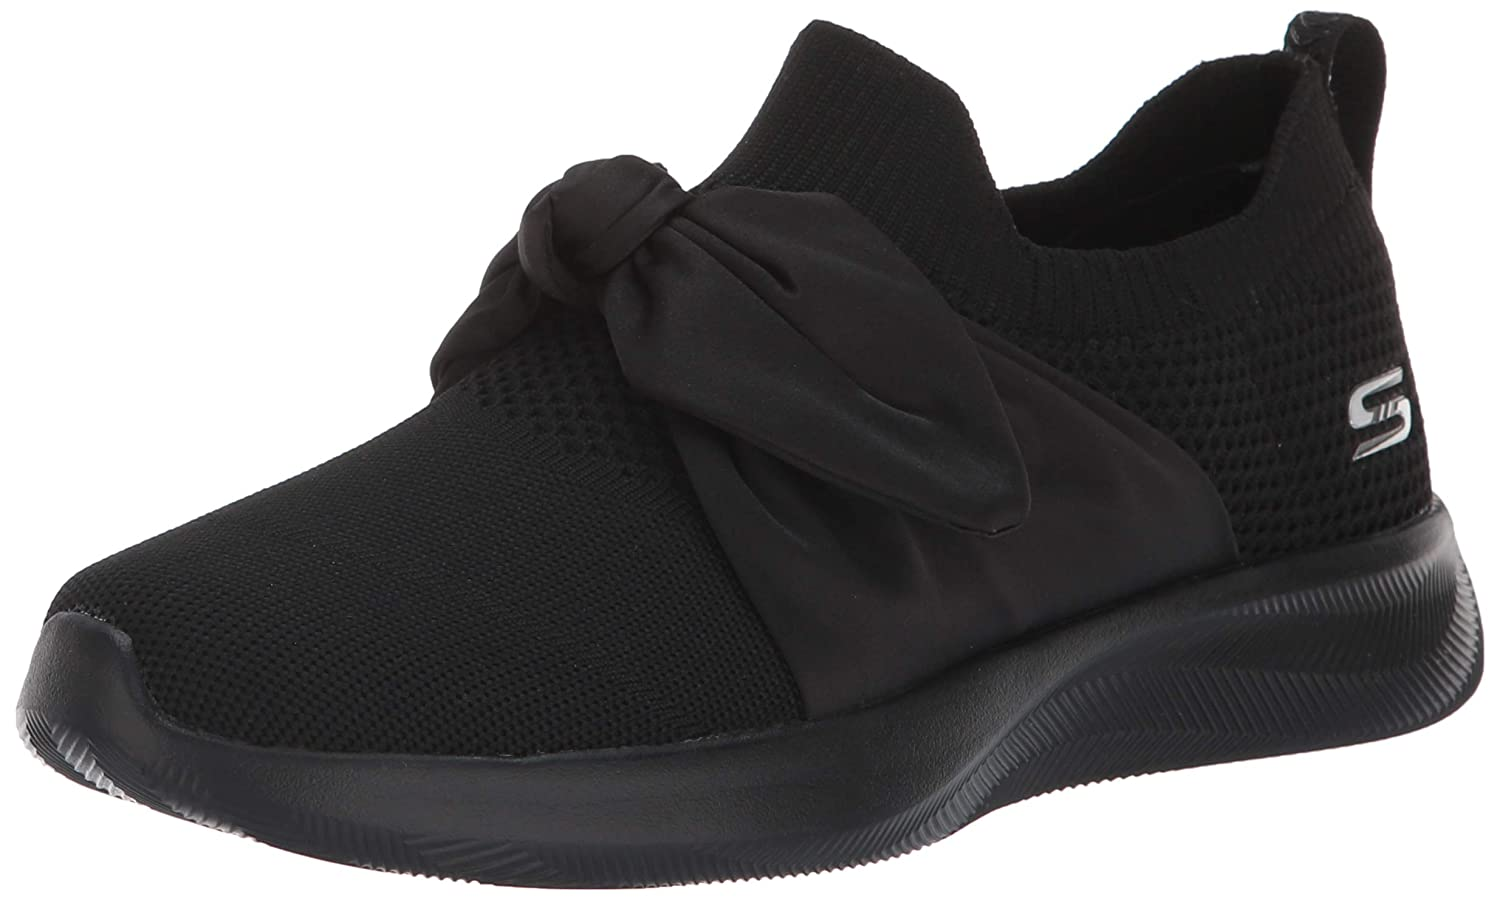 42251eb77b7e Amazon.com | Skechers BOBS Women's Bobs Squad 2-Bow Overlay Slip on  Engineered Knit Sneaker W Memory Foam | Shoes